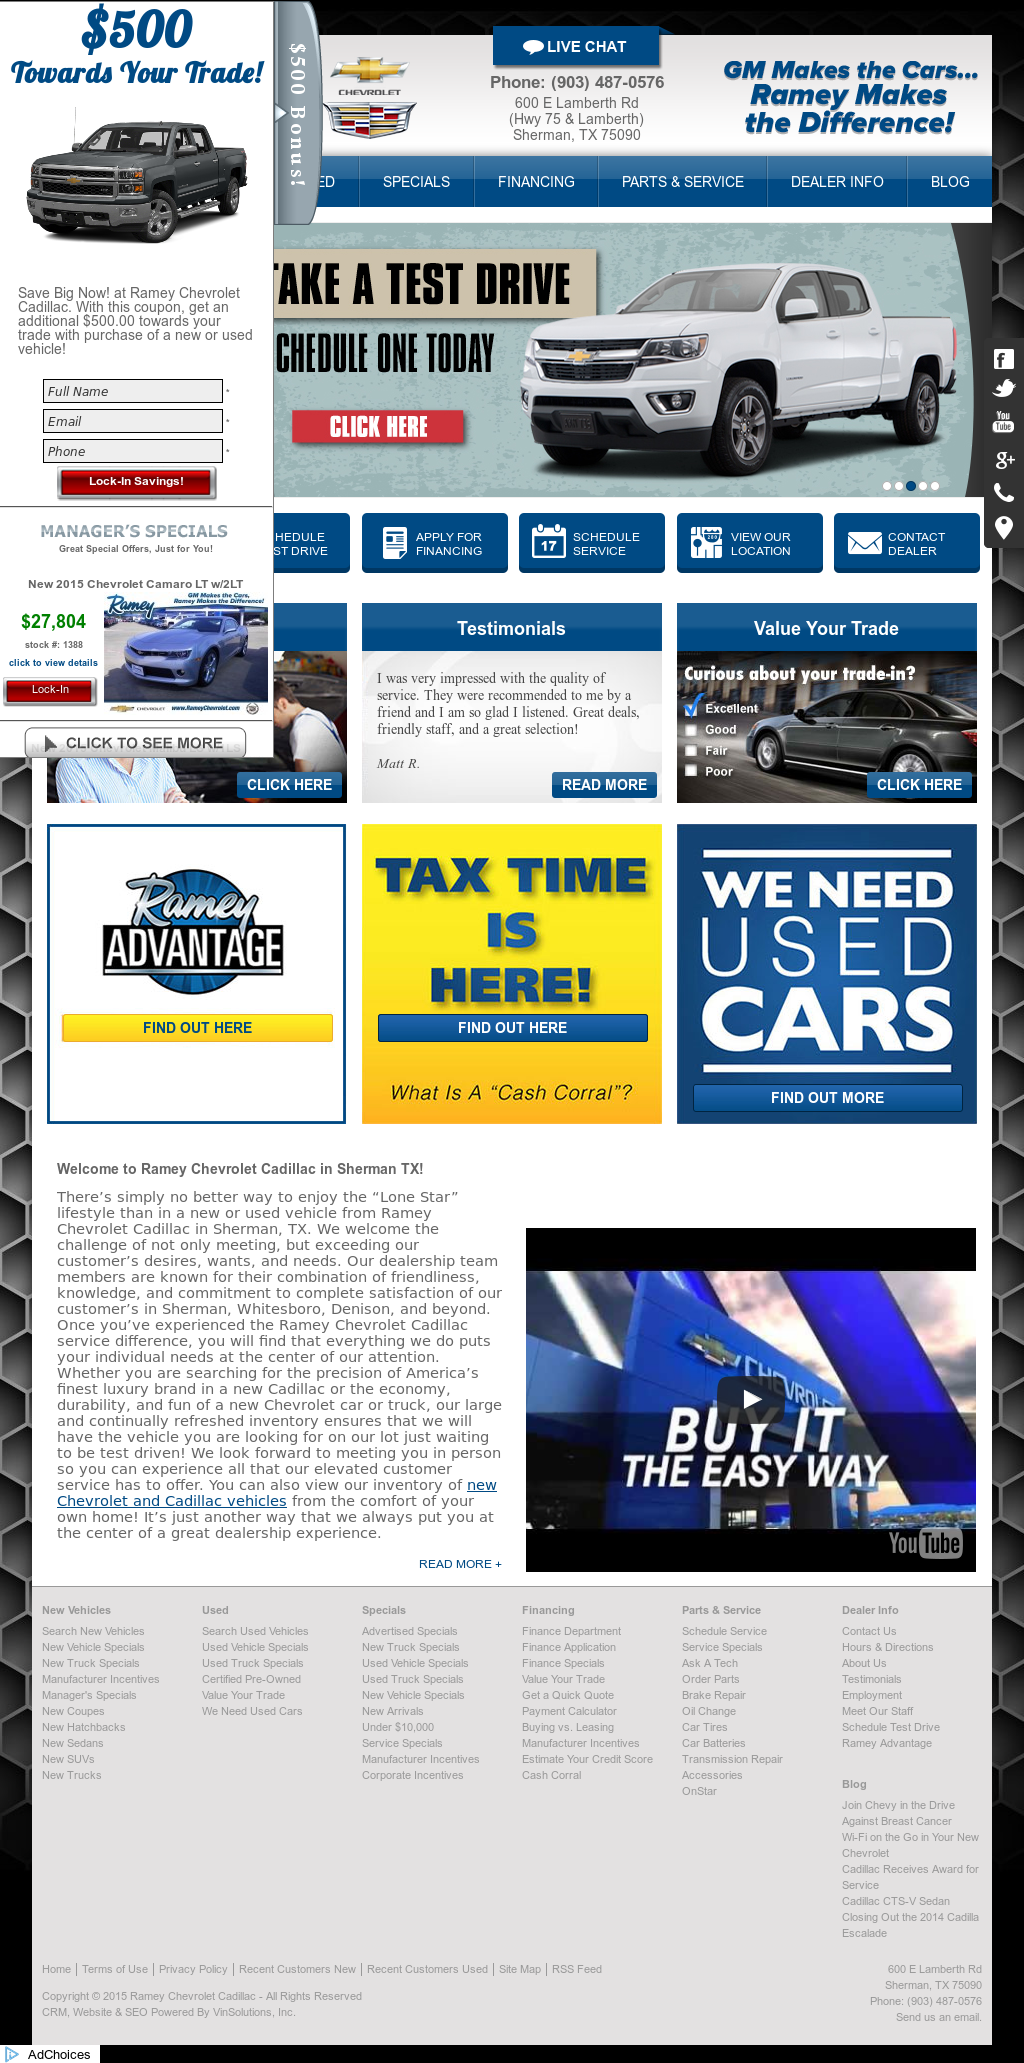 Ramey Chevrolet Sherman Tx >> Ramey Chevrolet Cadillac Competitors Revenue And Employees